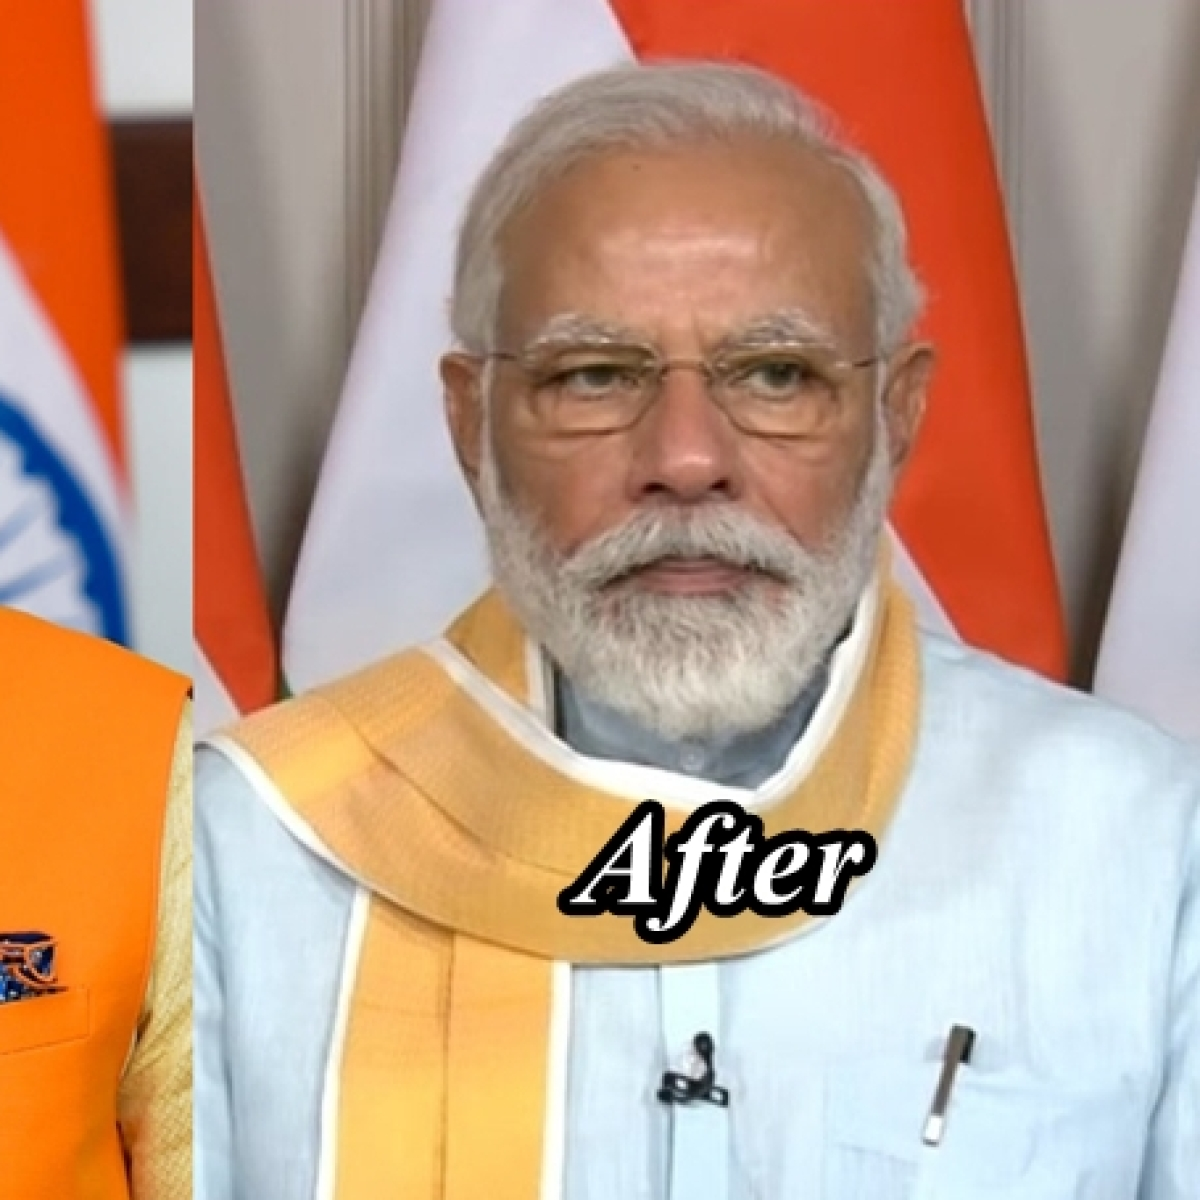 'Makes him look truly bad a**': Netizens have just noticed PM Modi's new quarantine beard